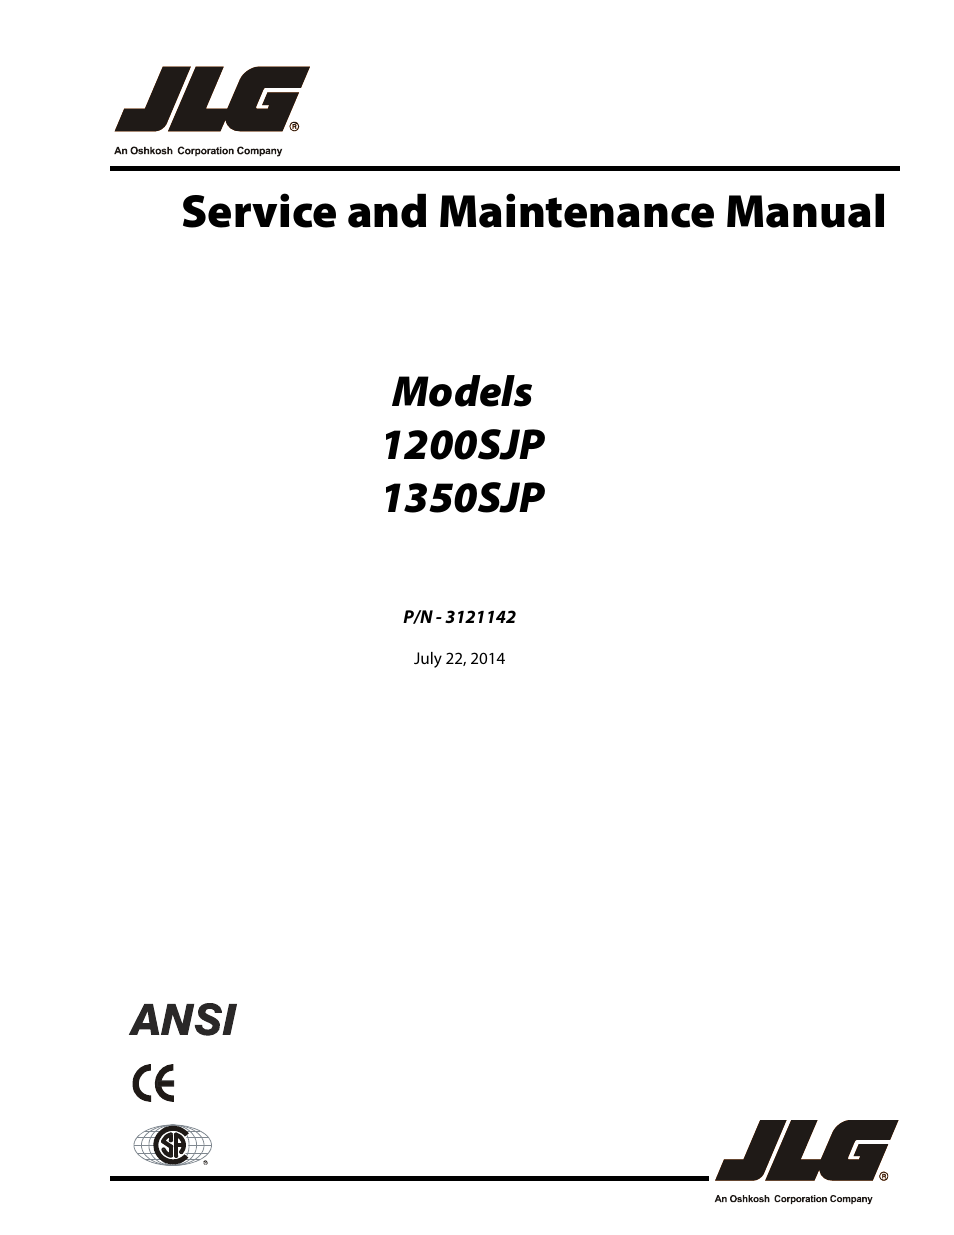 jlg 1350sjp service manual user manual 554 pages also for jlg 1350sjp service manual user manual 554 pages also for 1200sjp service manual